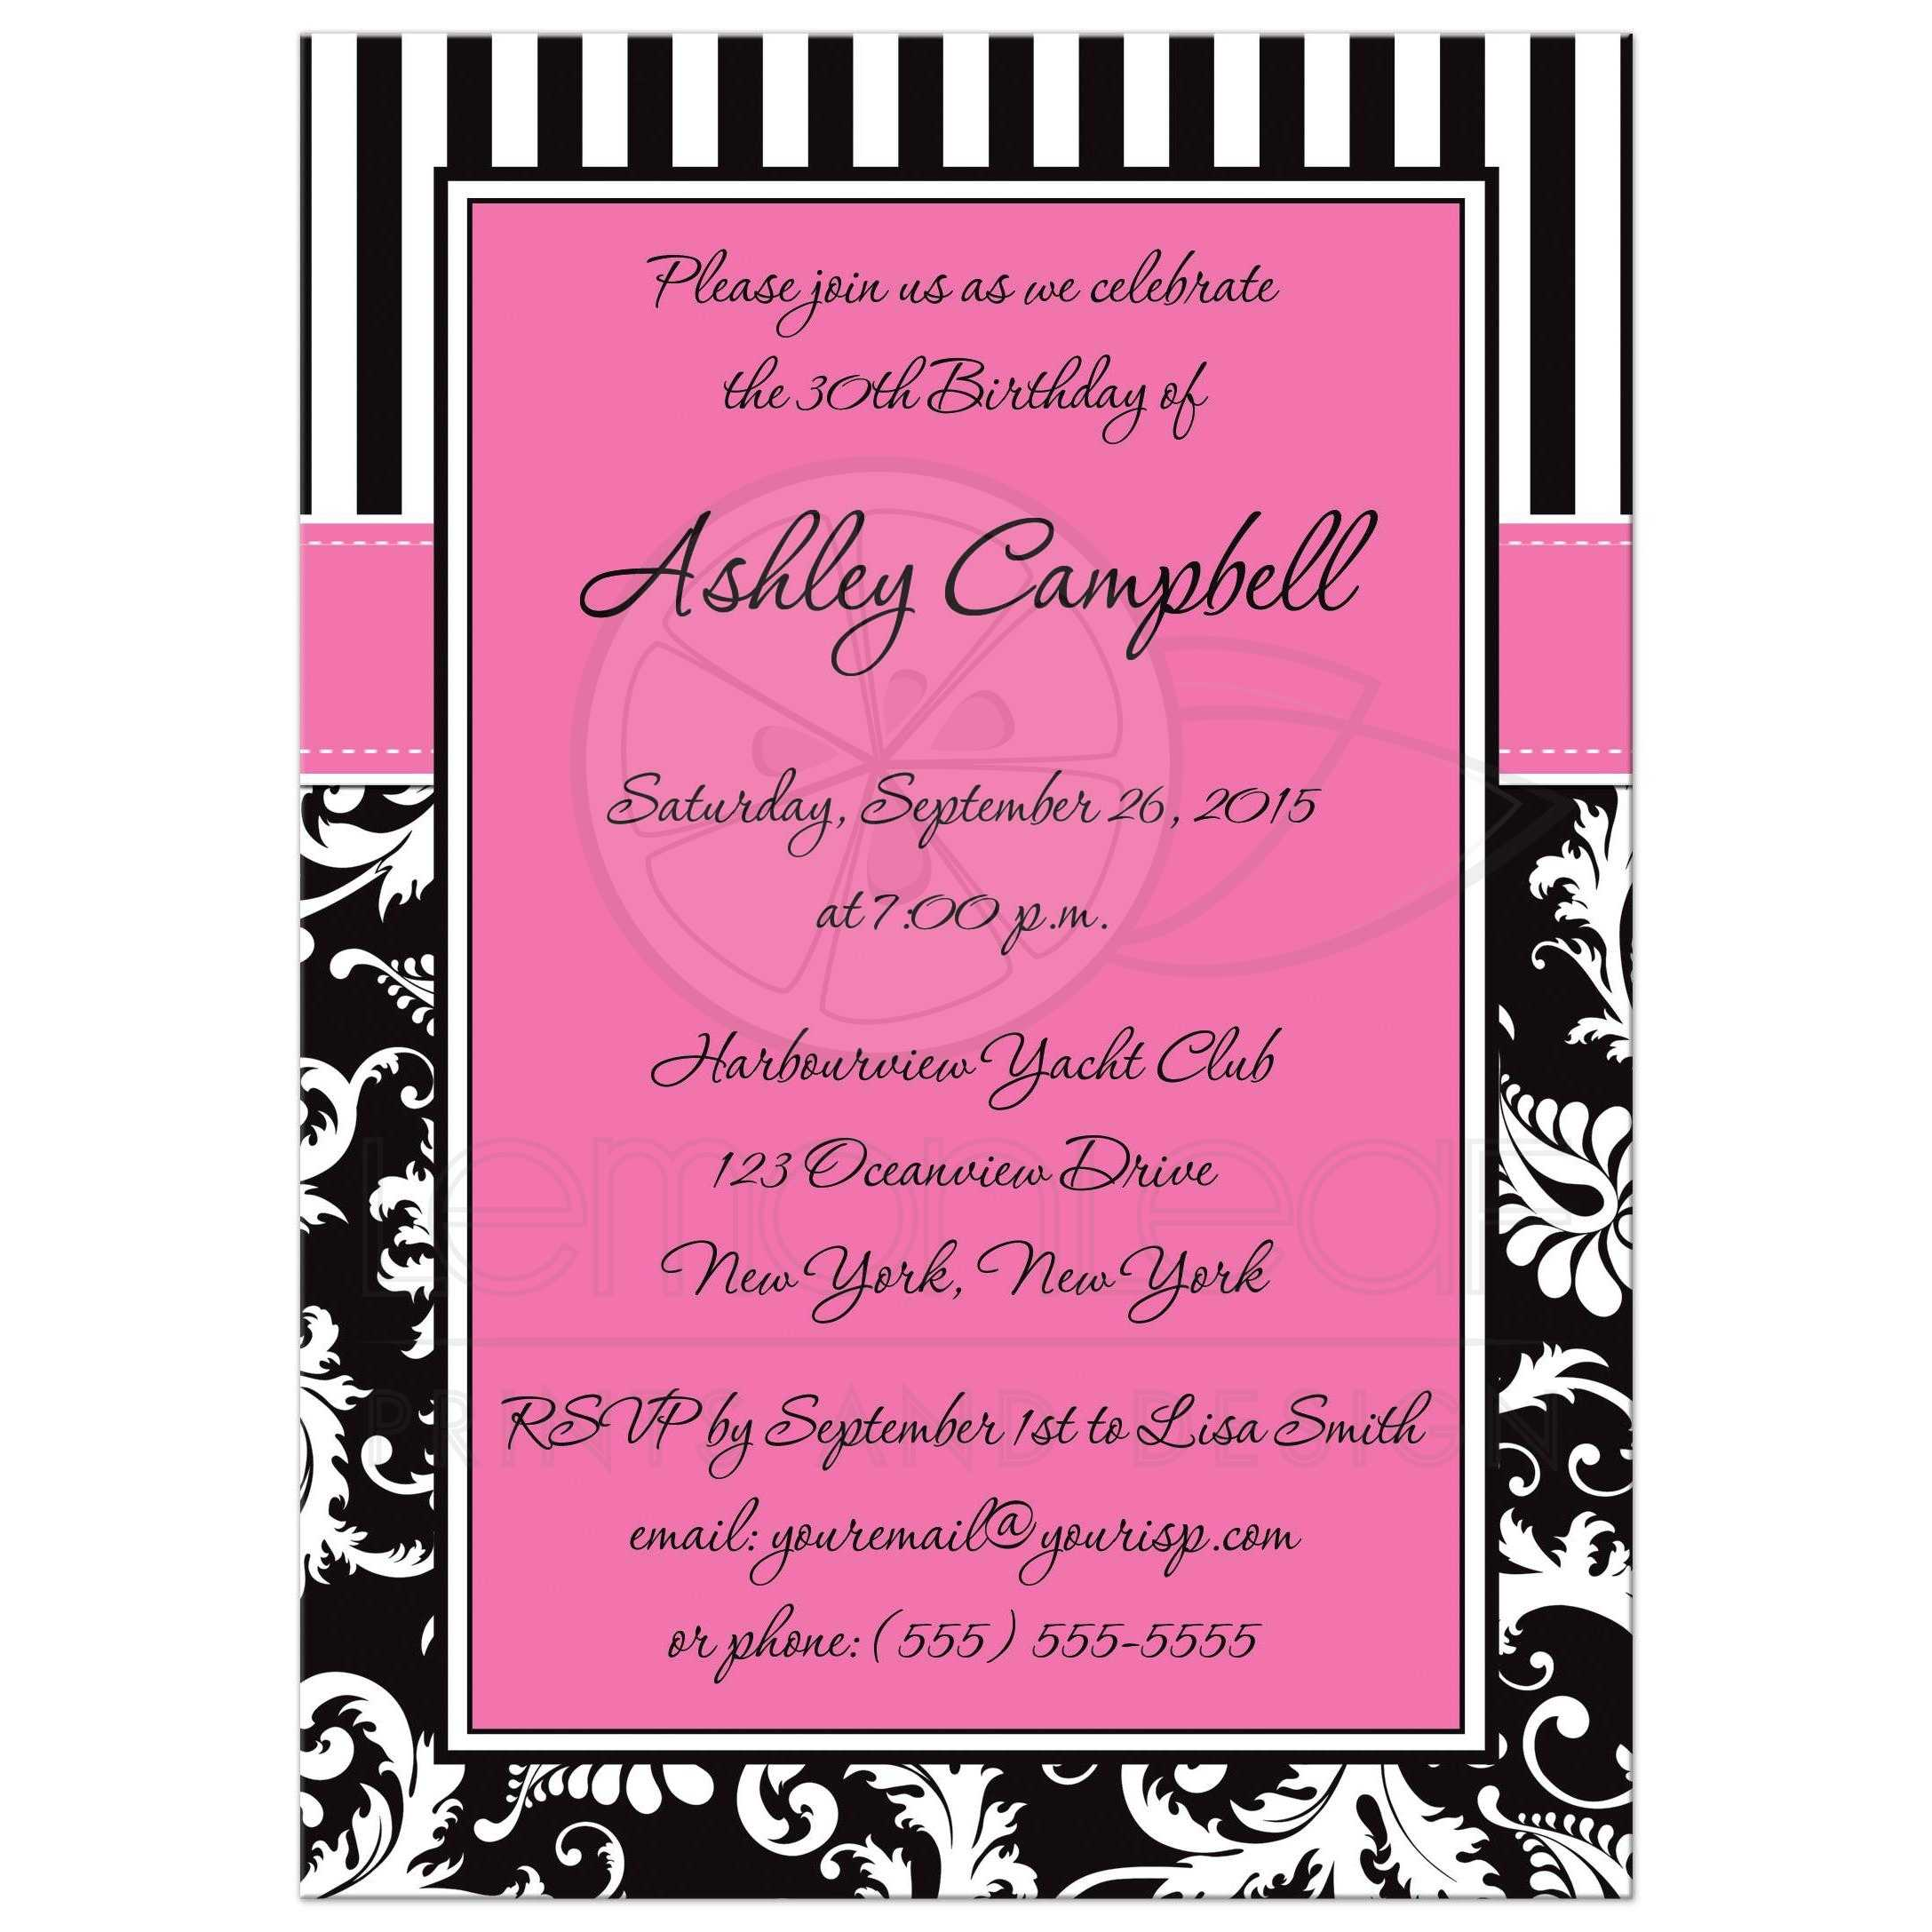 30th birthday invitation pink black white stripes floral damask black white pink 30th birthday invitation with stripes and floral damask pattern filmwisefo